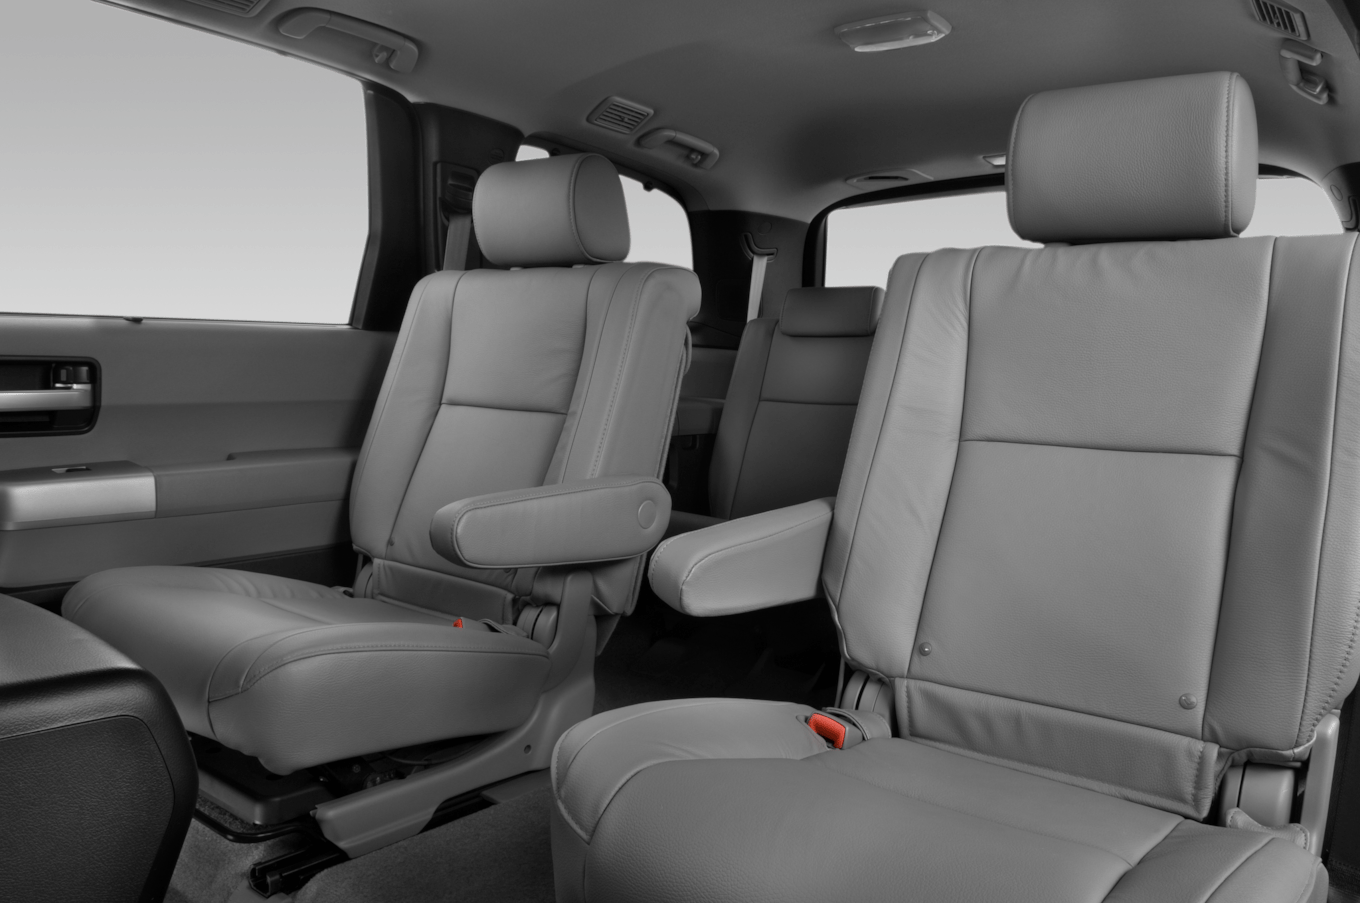 2012 Toyota Sequoia Reviews And Rating MotorTrend